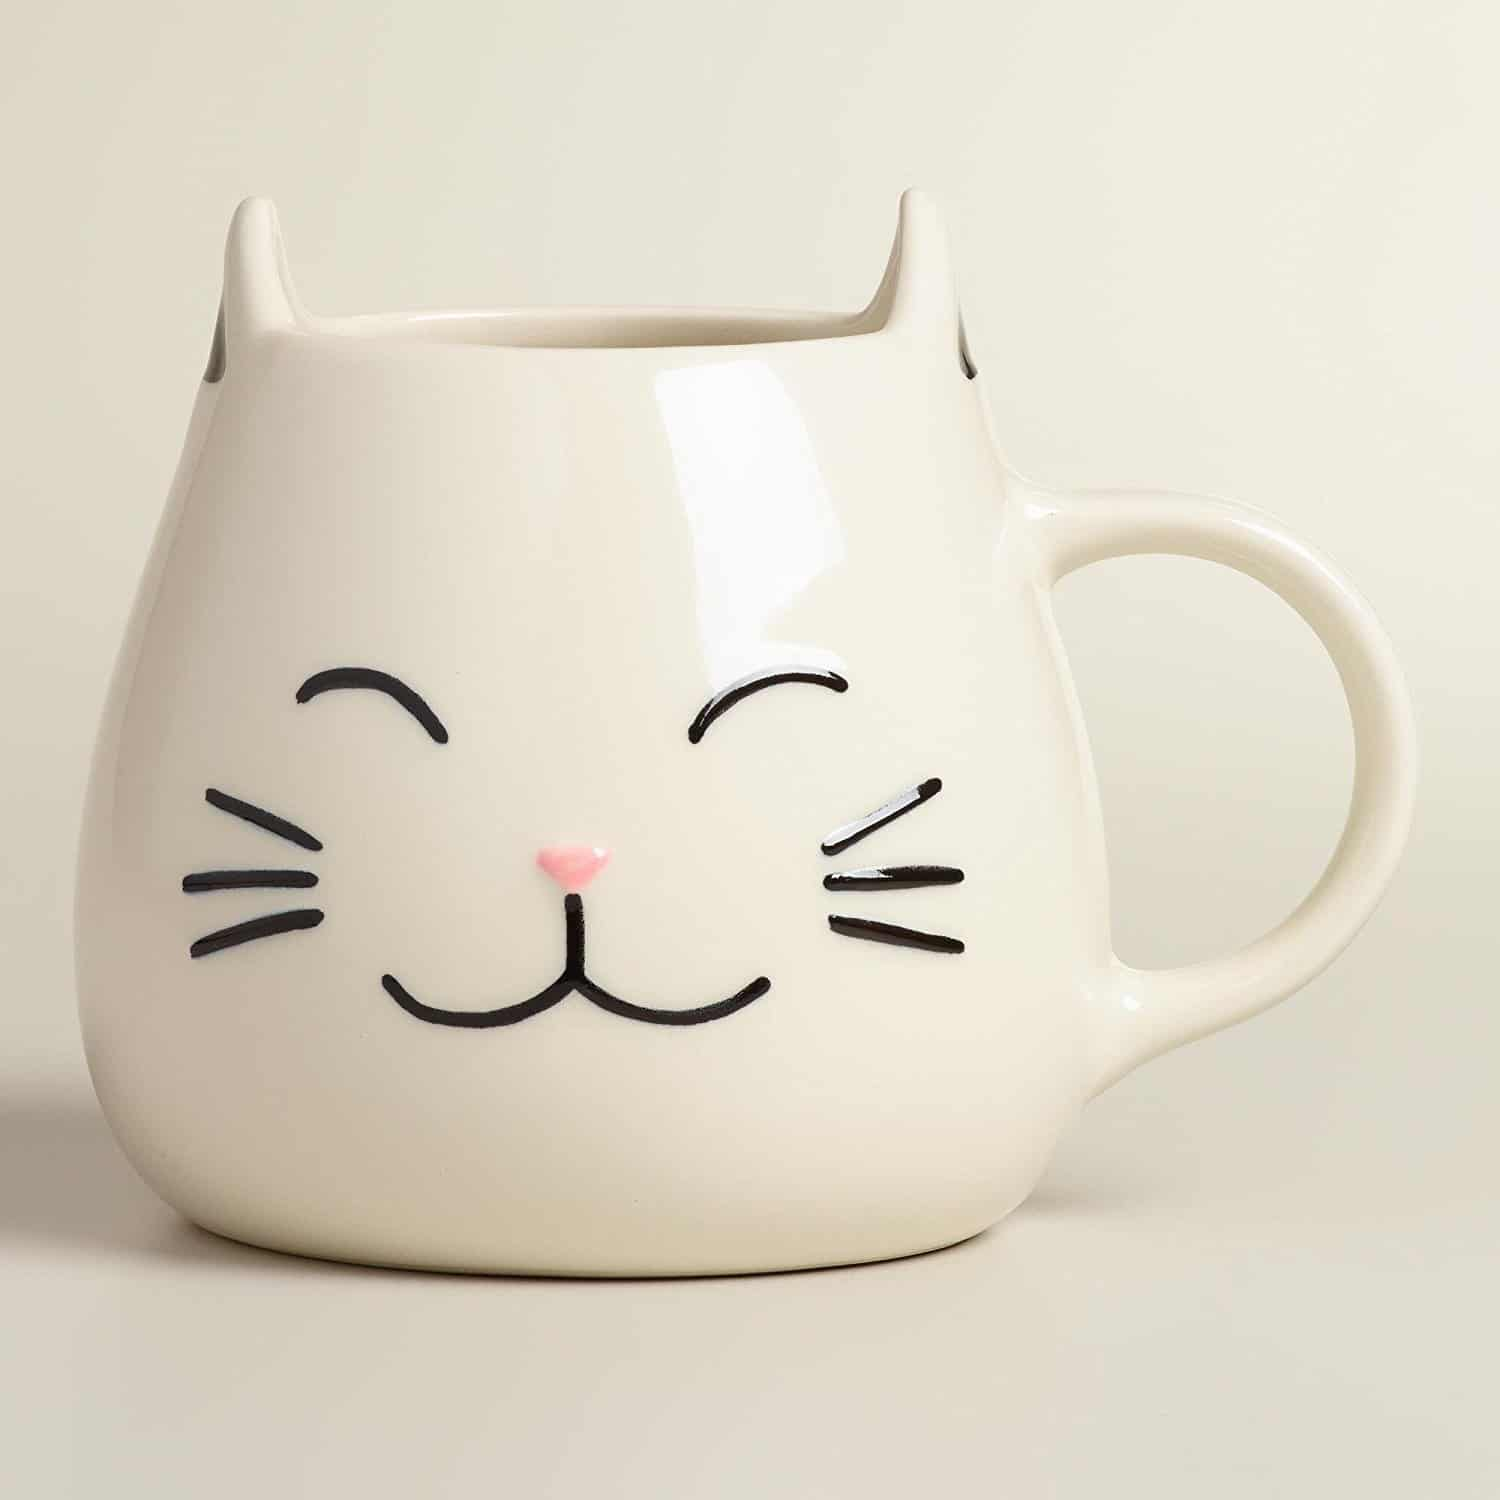 Unique Coffee Mugs 52 Super Cool Coffee Mugs You Would Love To Buy